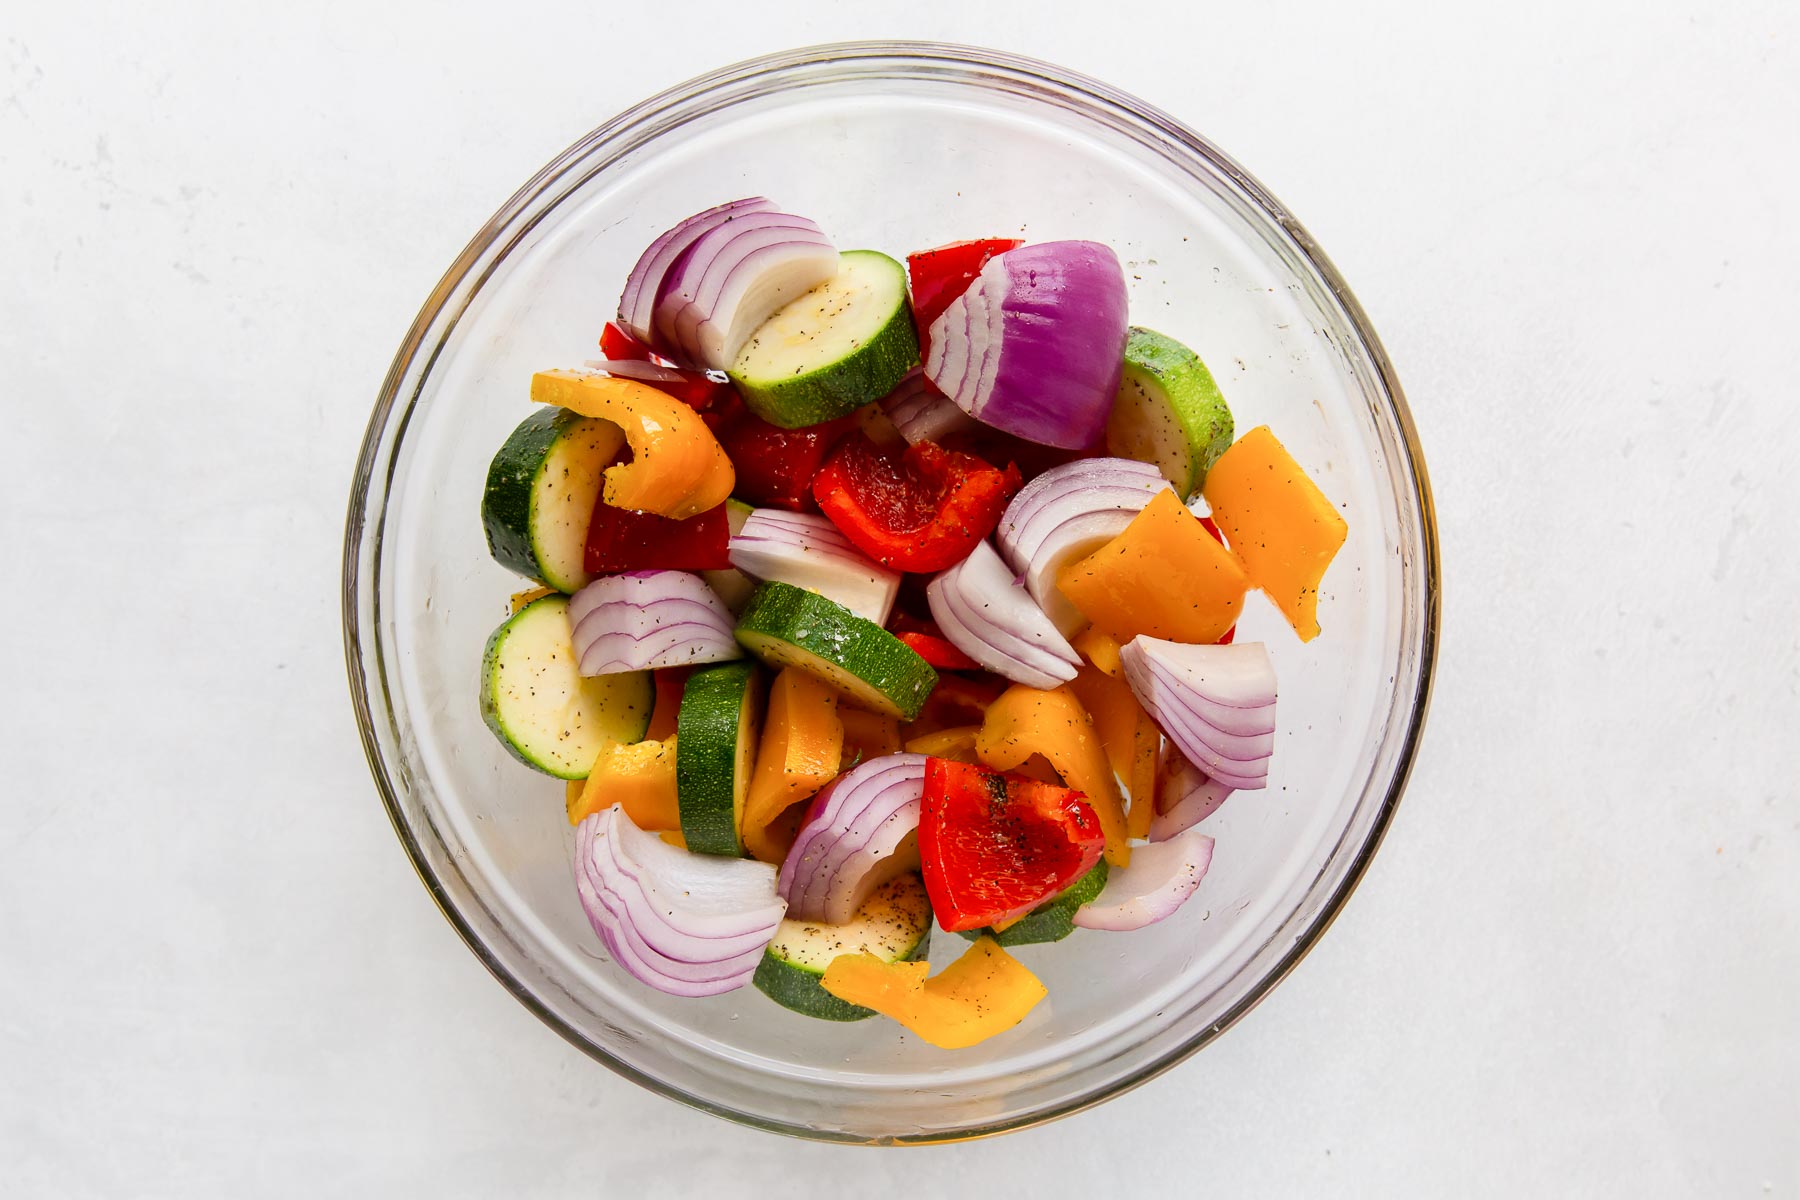 chopped zucchini, bell peppers and red onion in a bowl, tossed with olive oil, salt and pepper